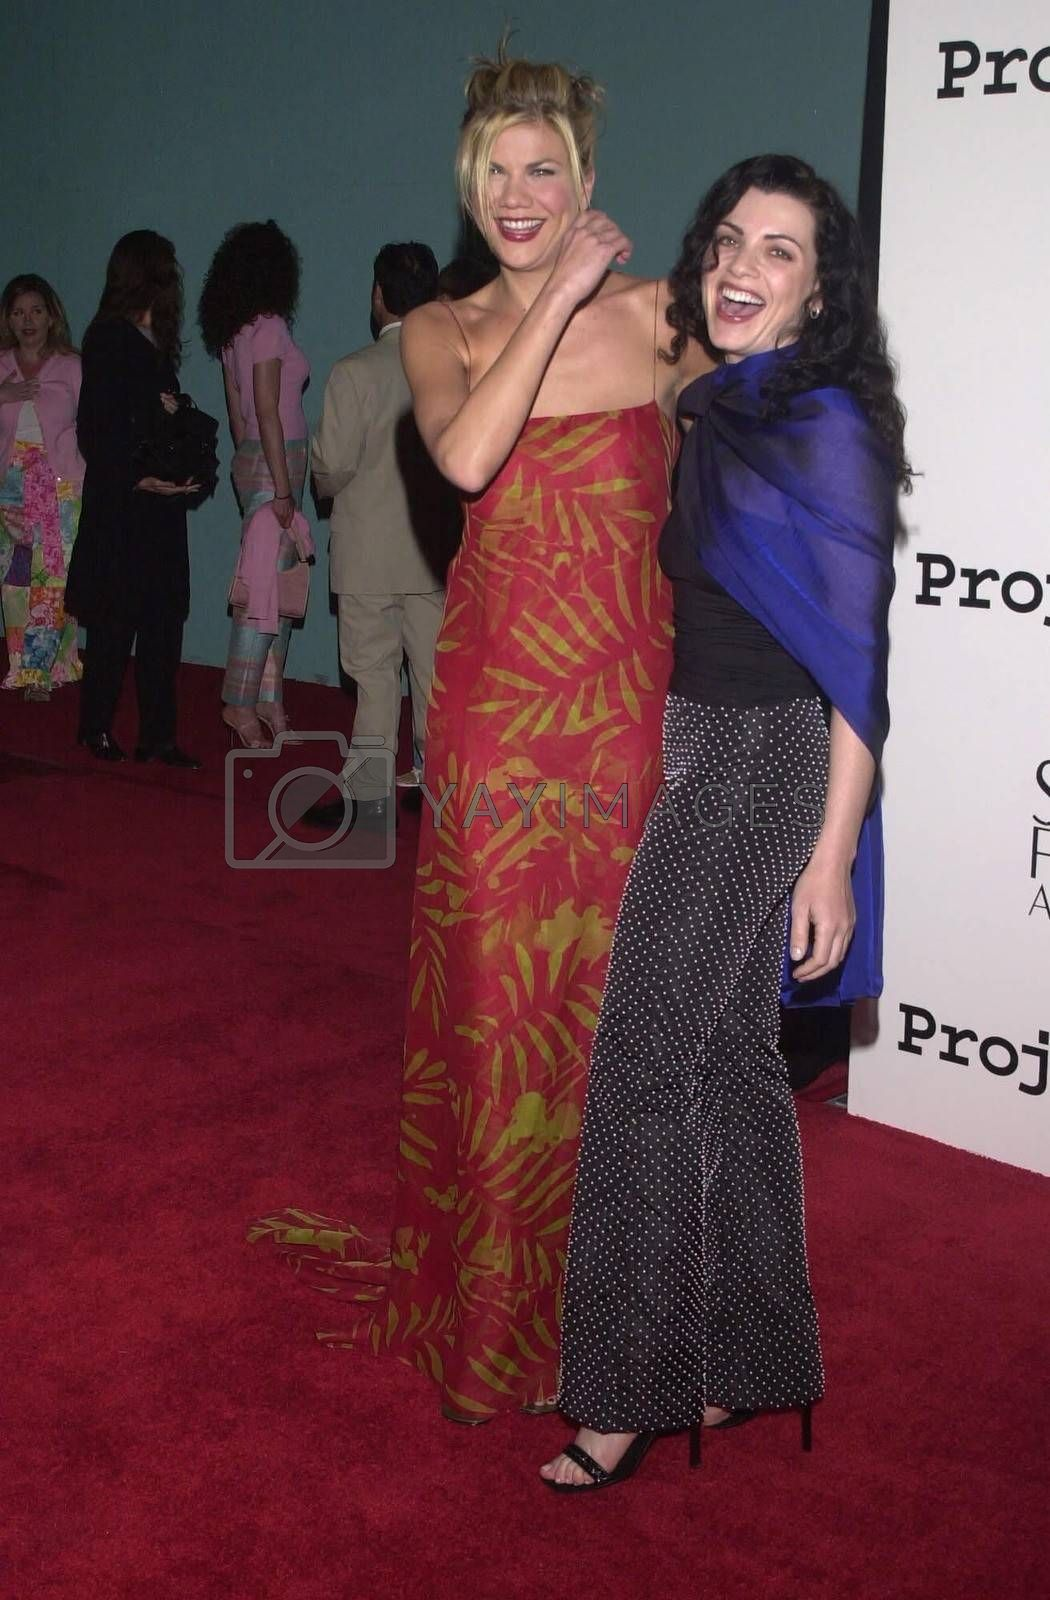 Kirsten Johnston and Julianna Margulies at the 2nd Annual ALS Benefit at the Hollywood Palladium, 04-10-00